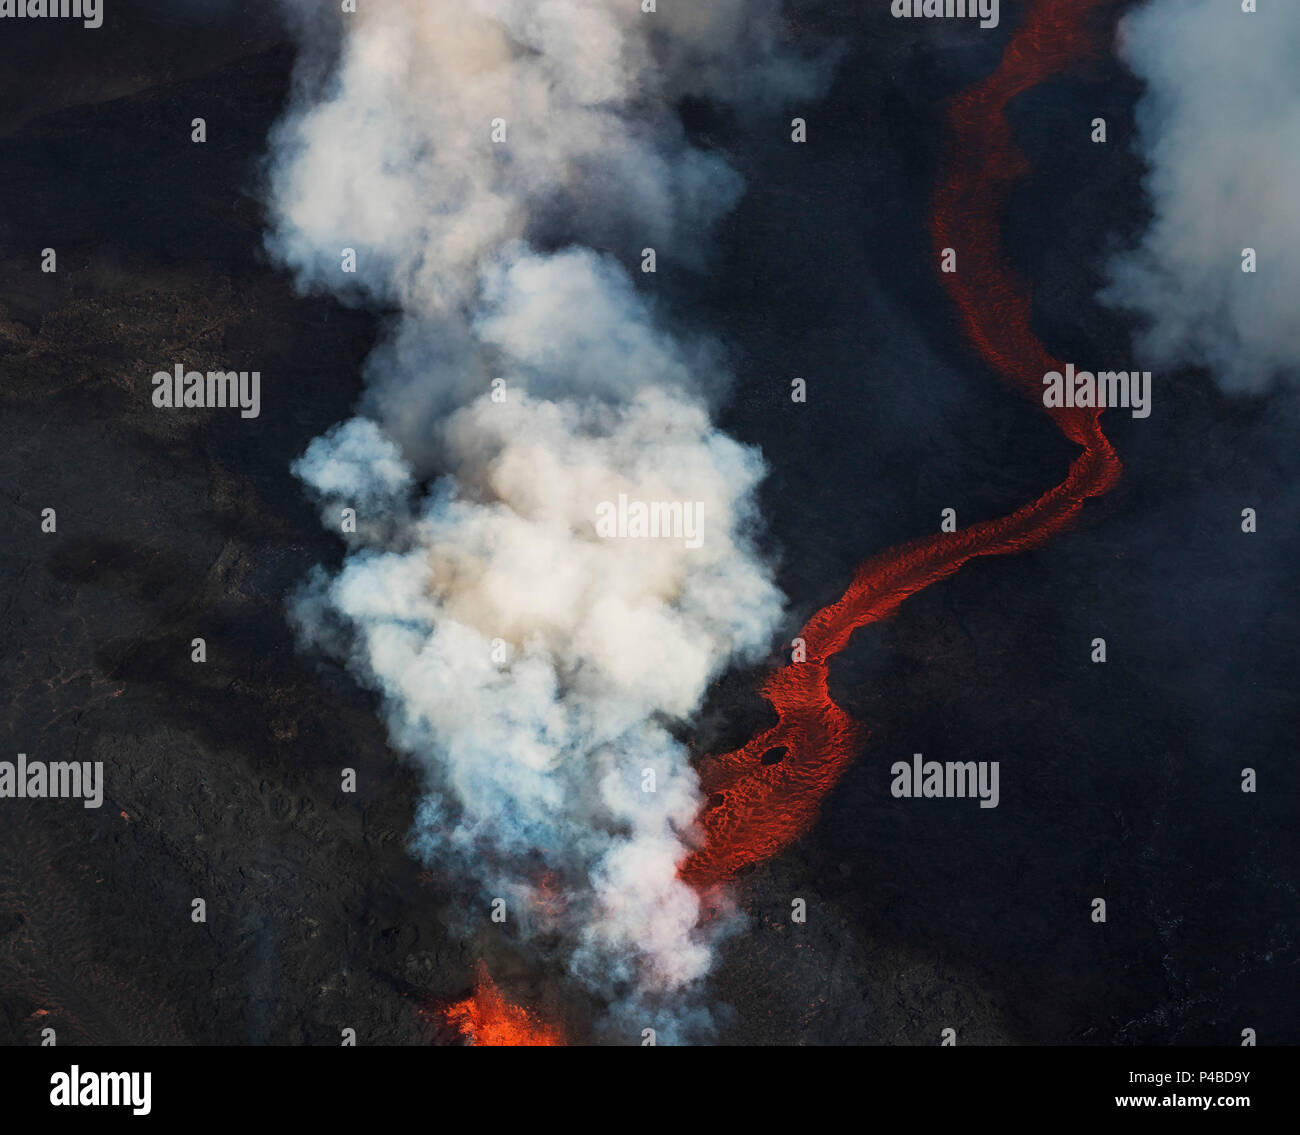 Aerial view of lava and steam. August 29, 2014 a fissure eruption started in Holuhraun at the northern end of a magma intrusion, which had moved progressively north, from the Bardarbunga volcano. Bardarbunga is a stratovolcano located under Vatnajokull, Iceland's most extensive glacier. Picture Date: September 3, 2014 Stock Photo